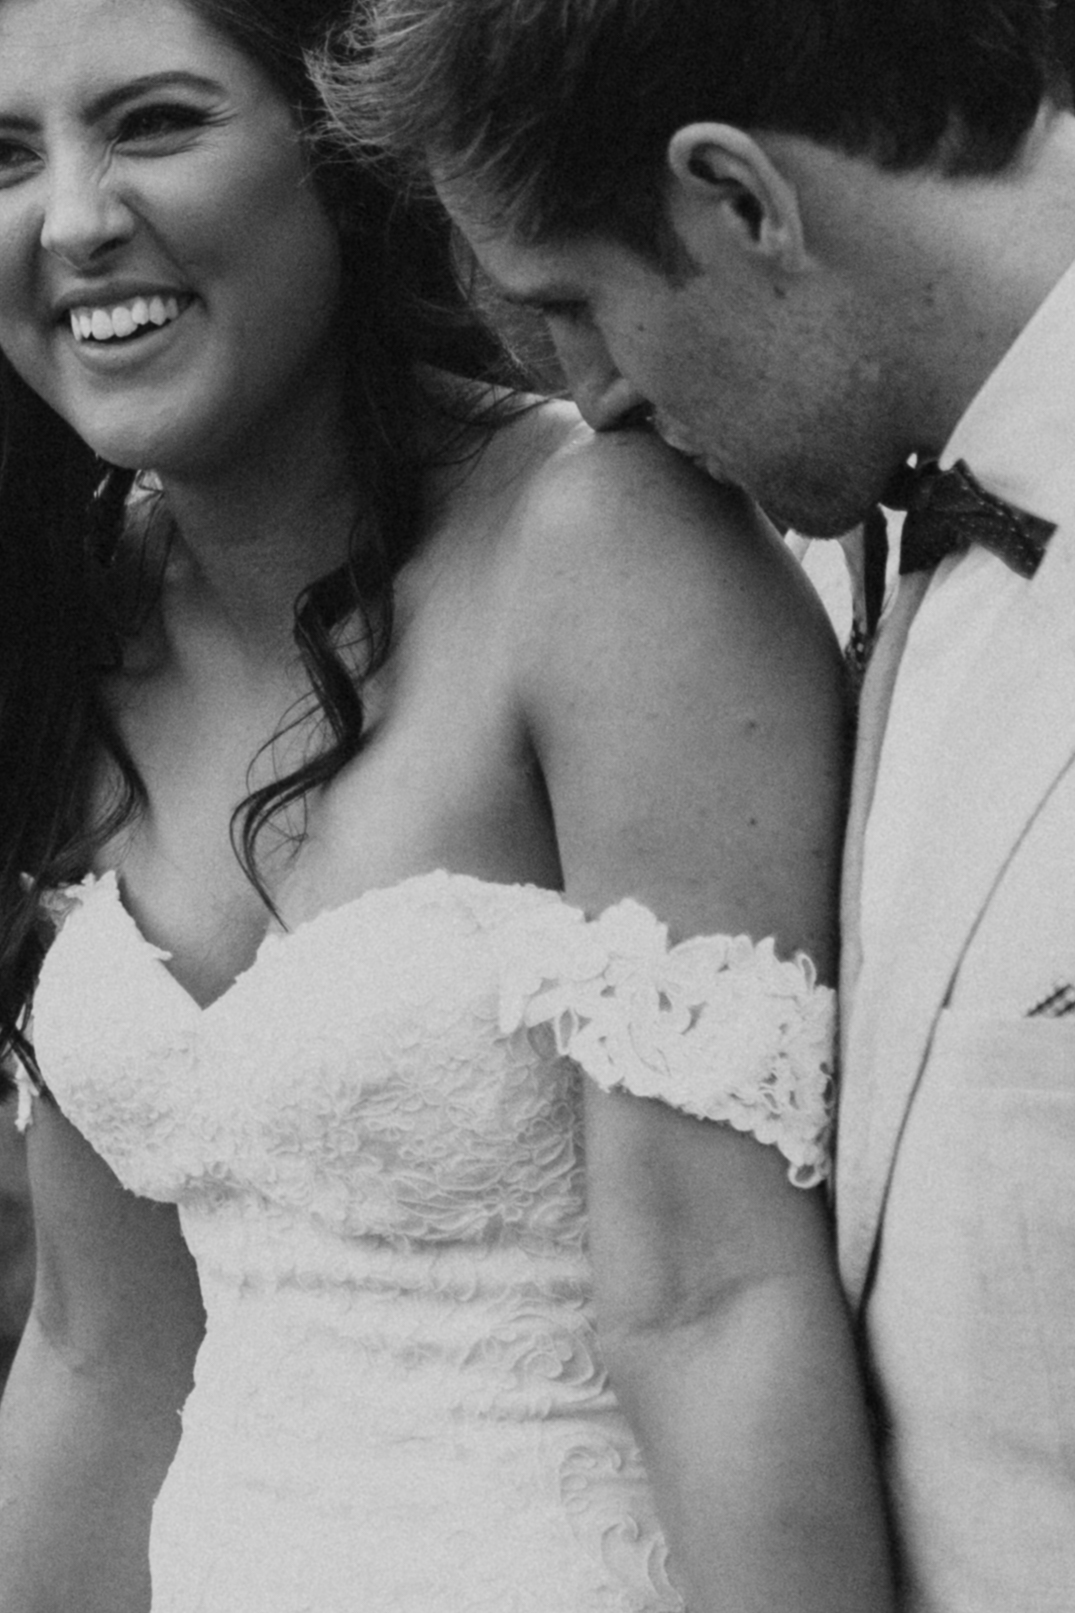 The-Riverstone-Estate-Wedding-Emotions-and-Math-154.jpg